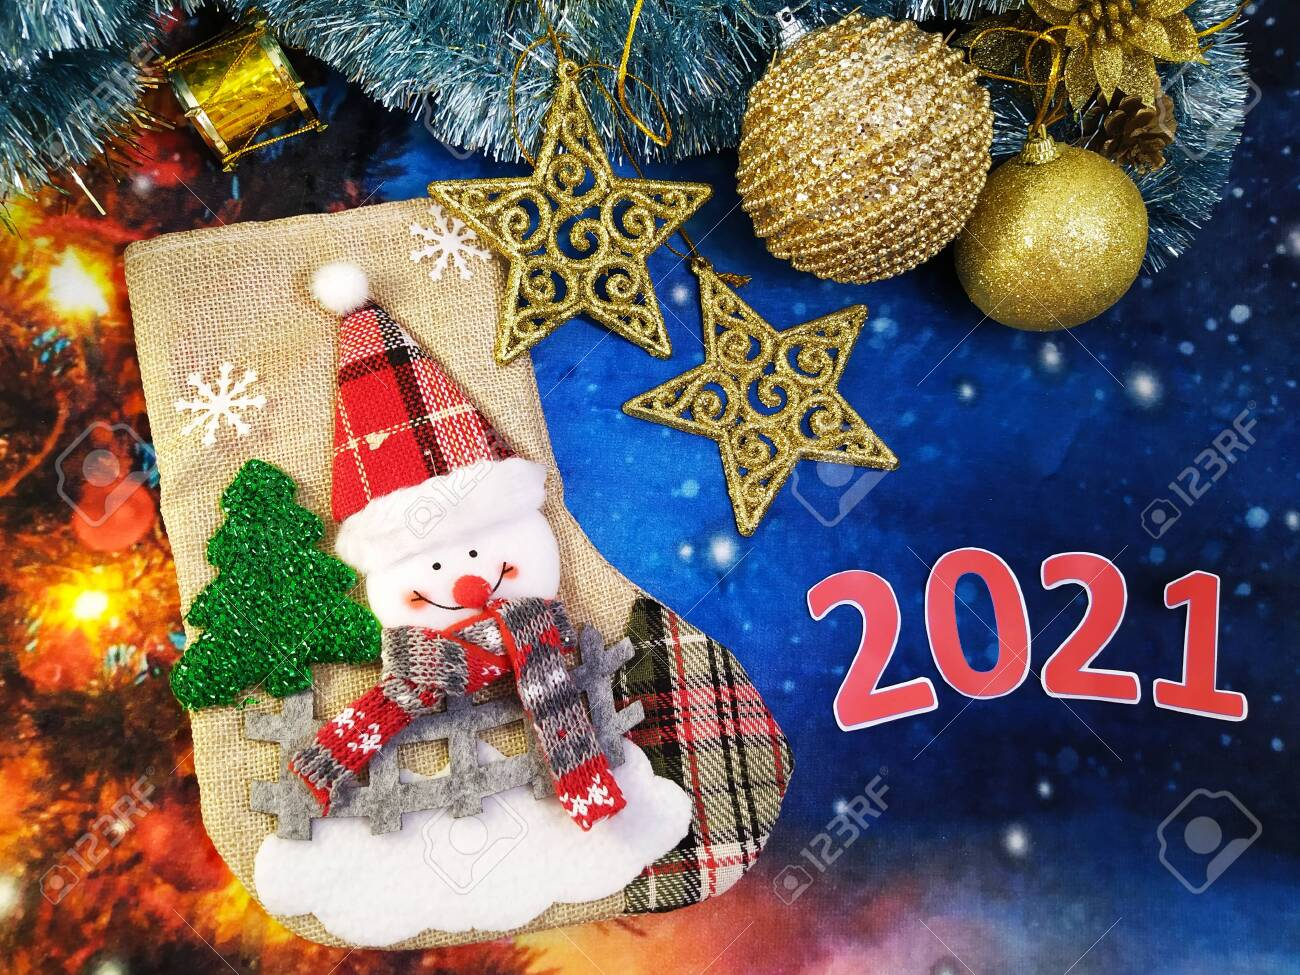 christmas decorations and new year 2021 stock photo picture and royalty free image image 136680692 christmas decorations and new year 2021